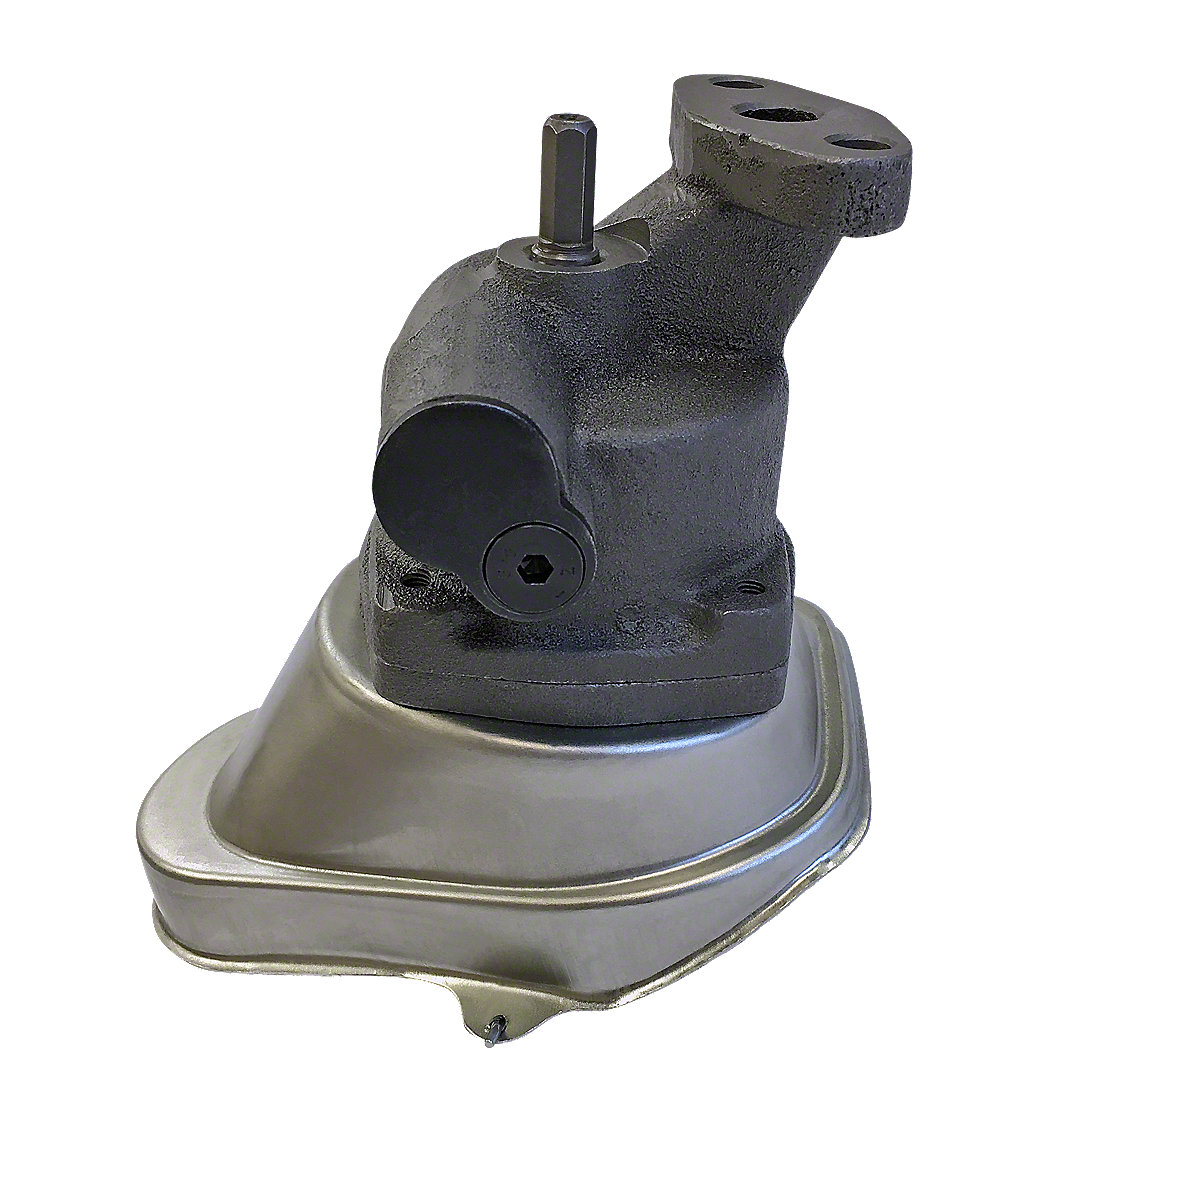 Steiner Tractor Parts Oil Pumps : Oil pump with sump screw fds